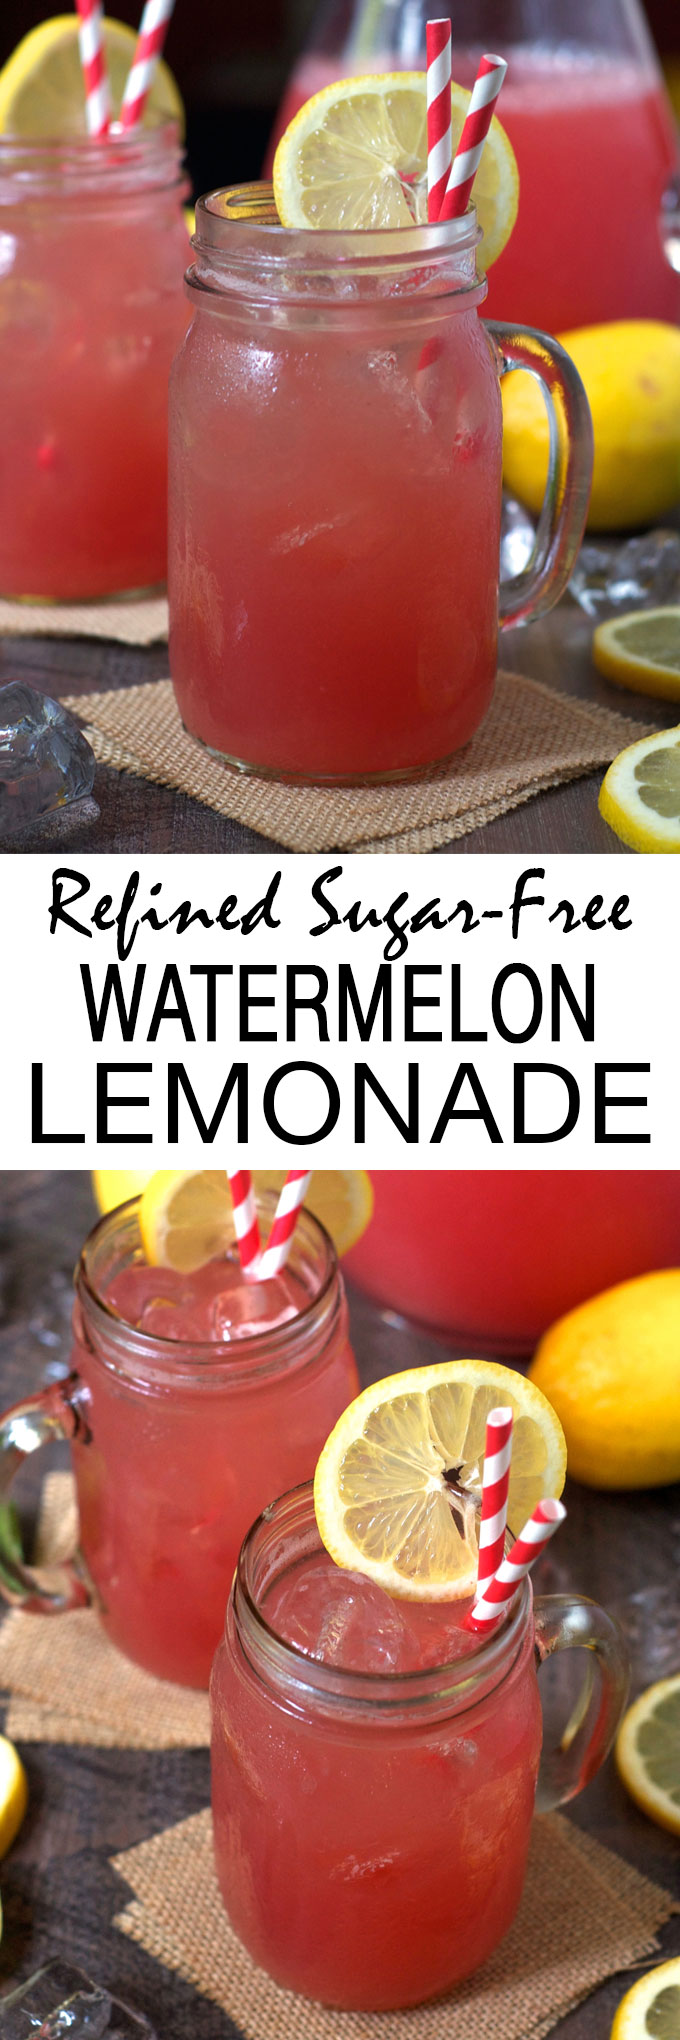 This healthy, refined sugar-free watermelon lemonade is made with only three simple, natural ingredients! Sweet, tart, and totally refreshing, it's the ultimate summer drink!